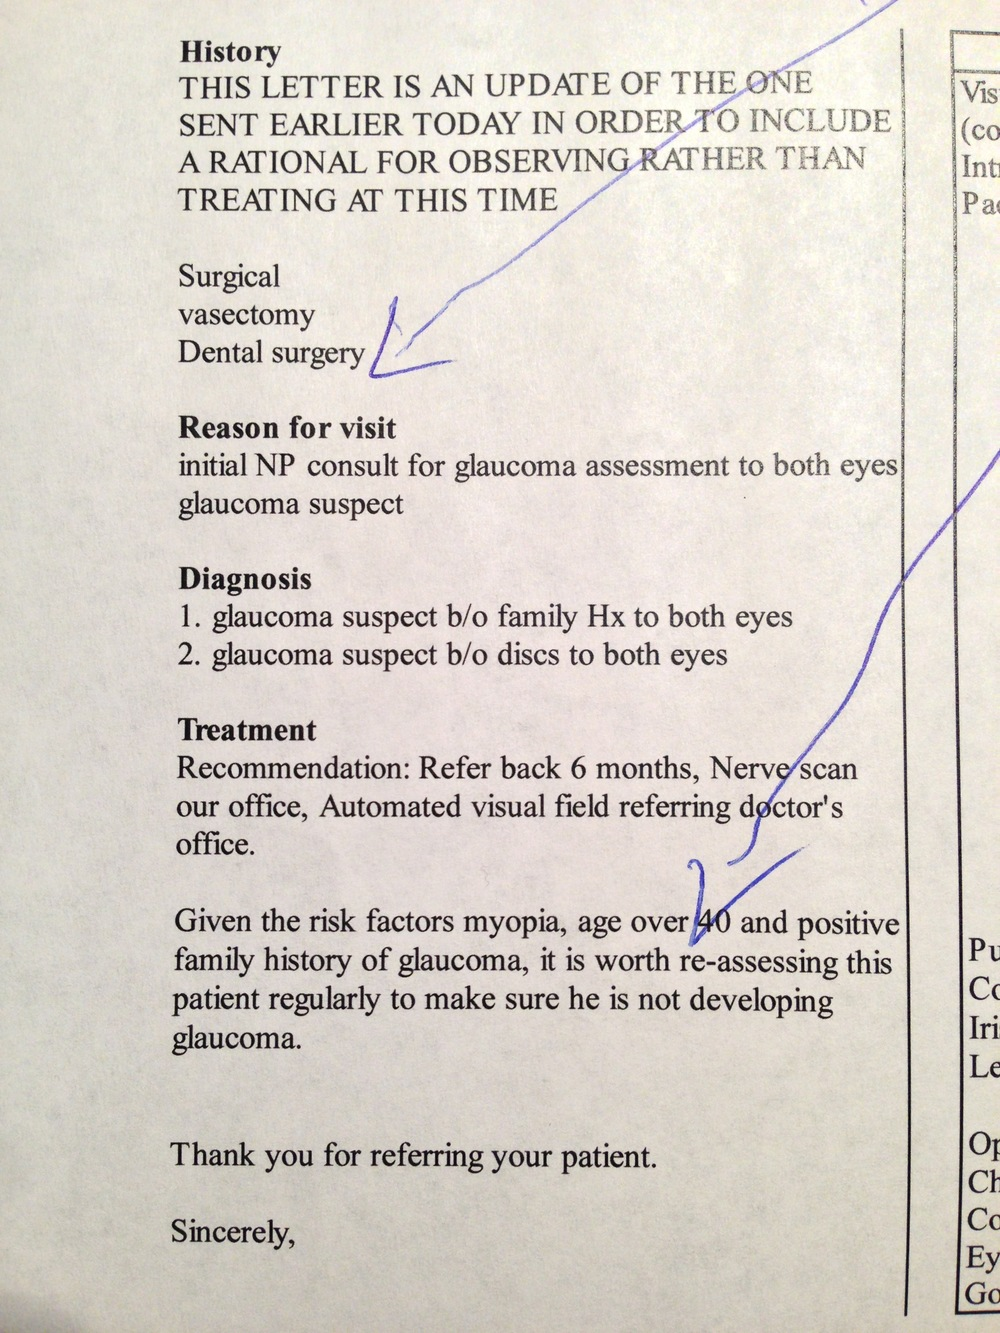 Glaucoma suspect after revising letter